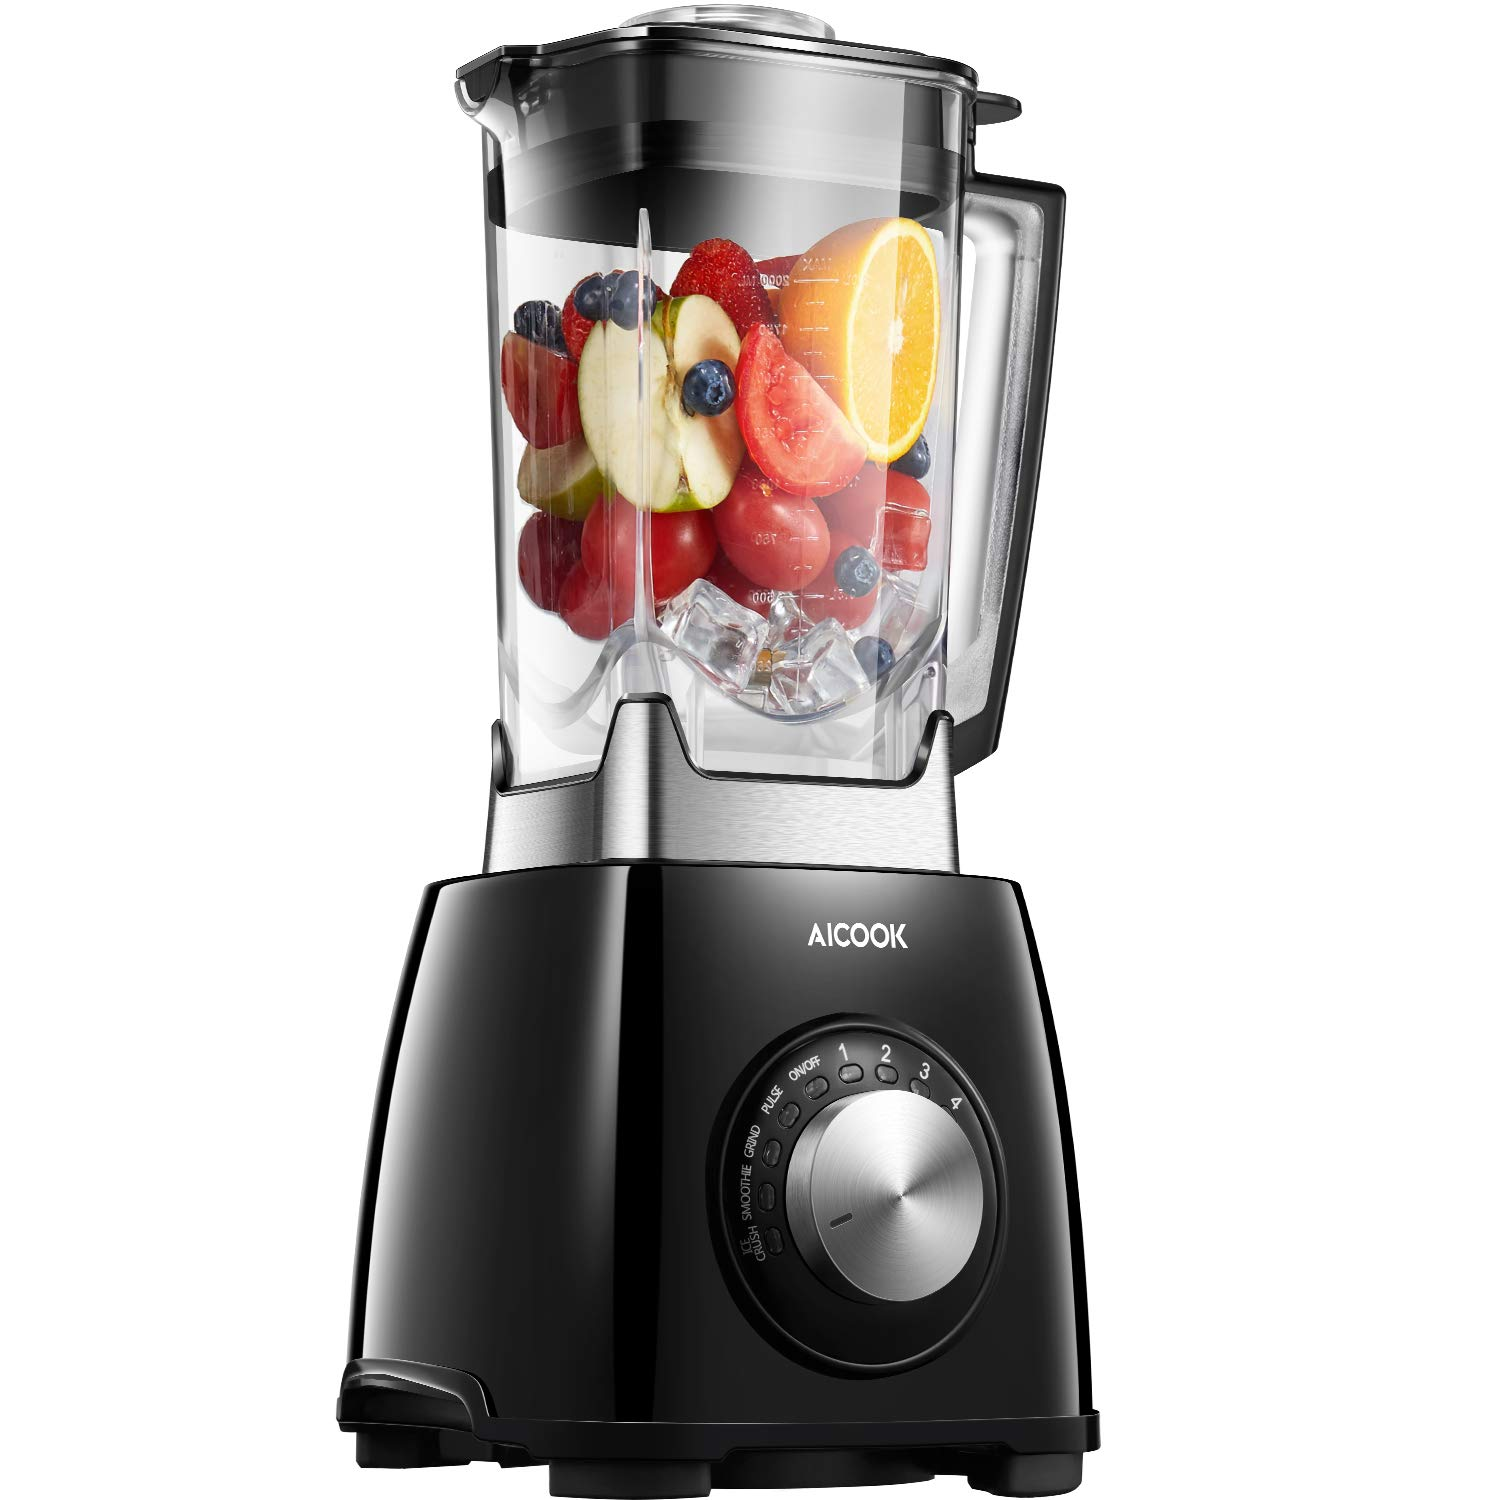 AICOOK Professional Countertop Blender for Shakes and Smoothies, 1450W High Speed Smoothie Blender for Ice Crushing Frozen Fruits, 4-Auto-iQ Programs, 72OZ Dishwasher Safe Jar NY-8668MJA